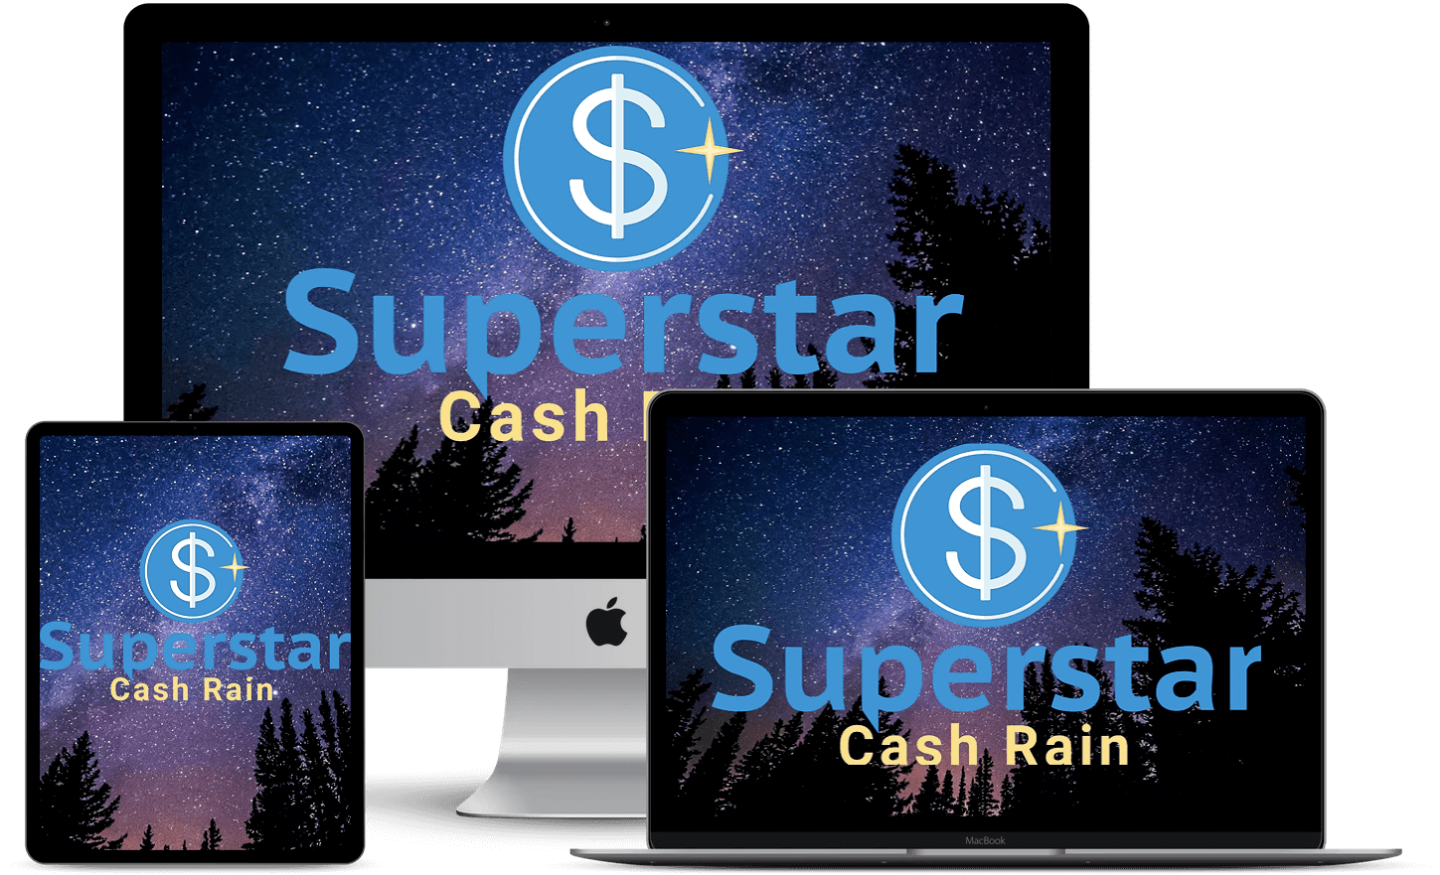 Superstar Cash Rain - $200/Day Method Within 12 Minutes